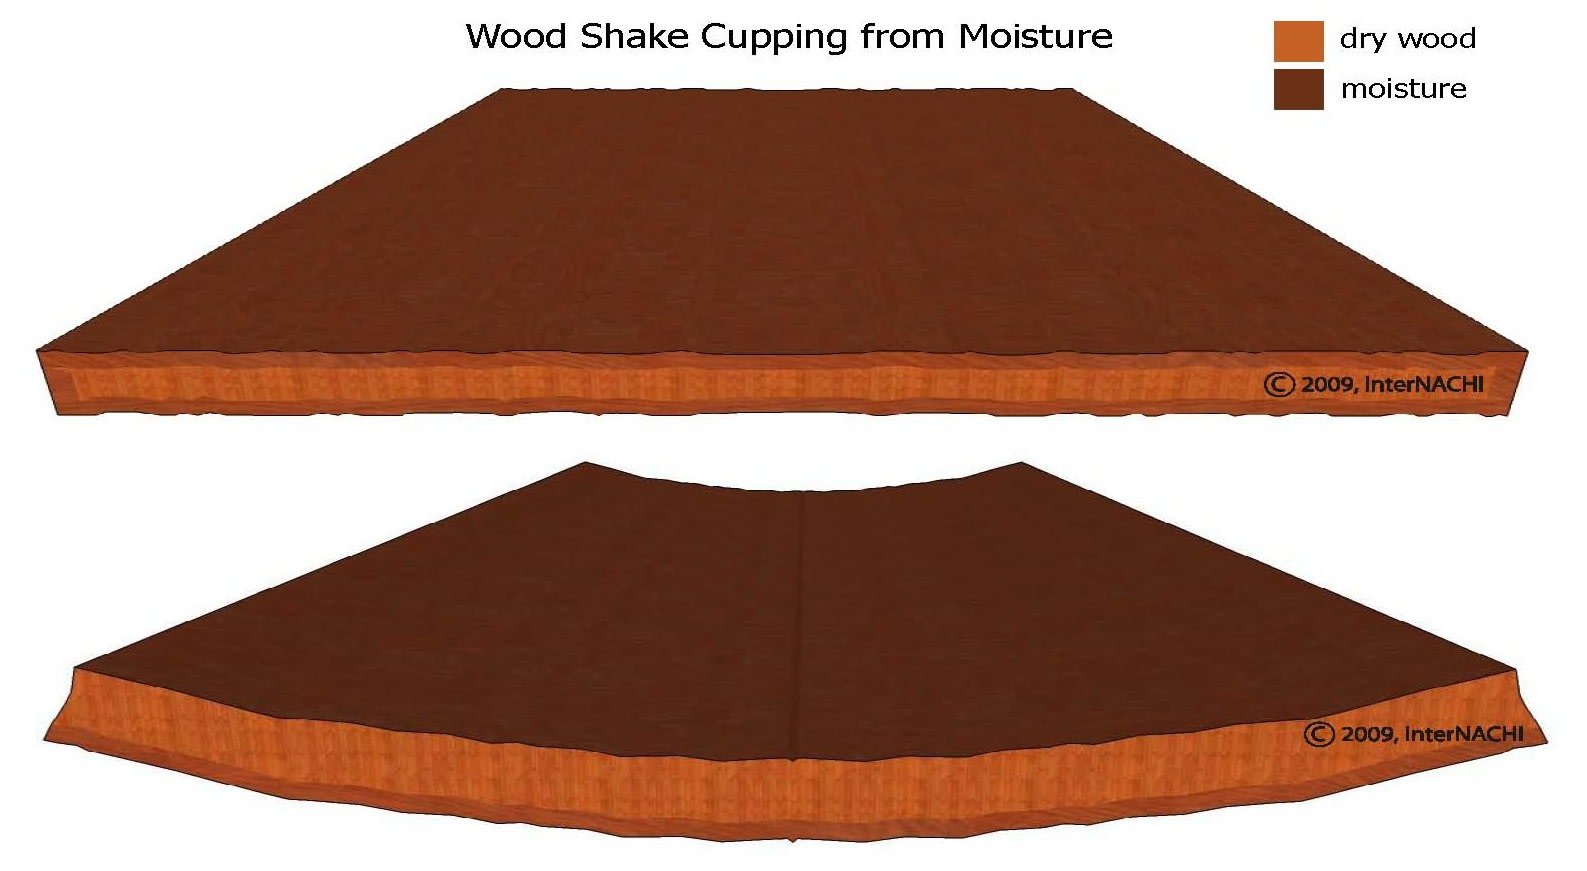 Wood shake cupping from moisture.